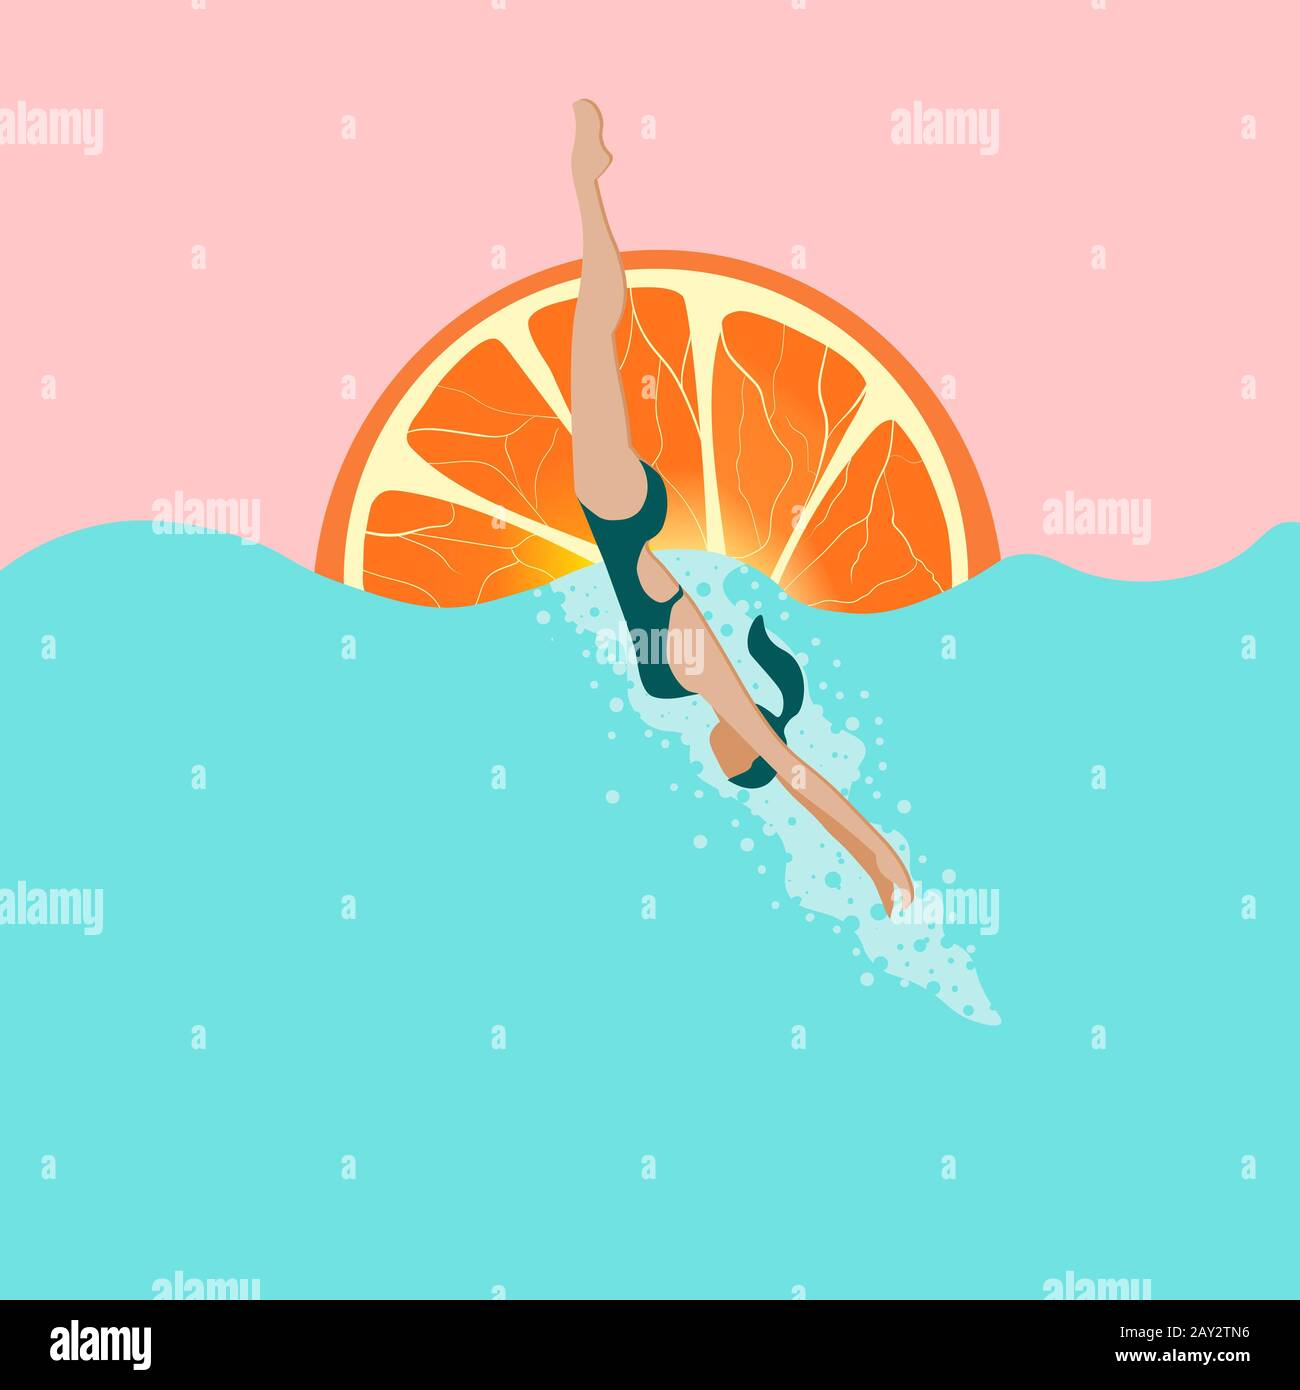 swim watercolor illustration with bright orange sun summer vibes modern colorful design copyspace for ad wallpaper background for your device summertime holidays resort vacation concept 2AY2TN6